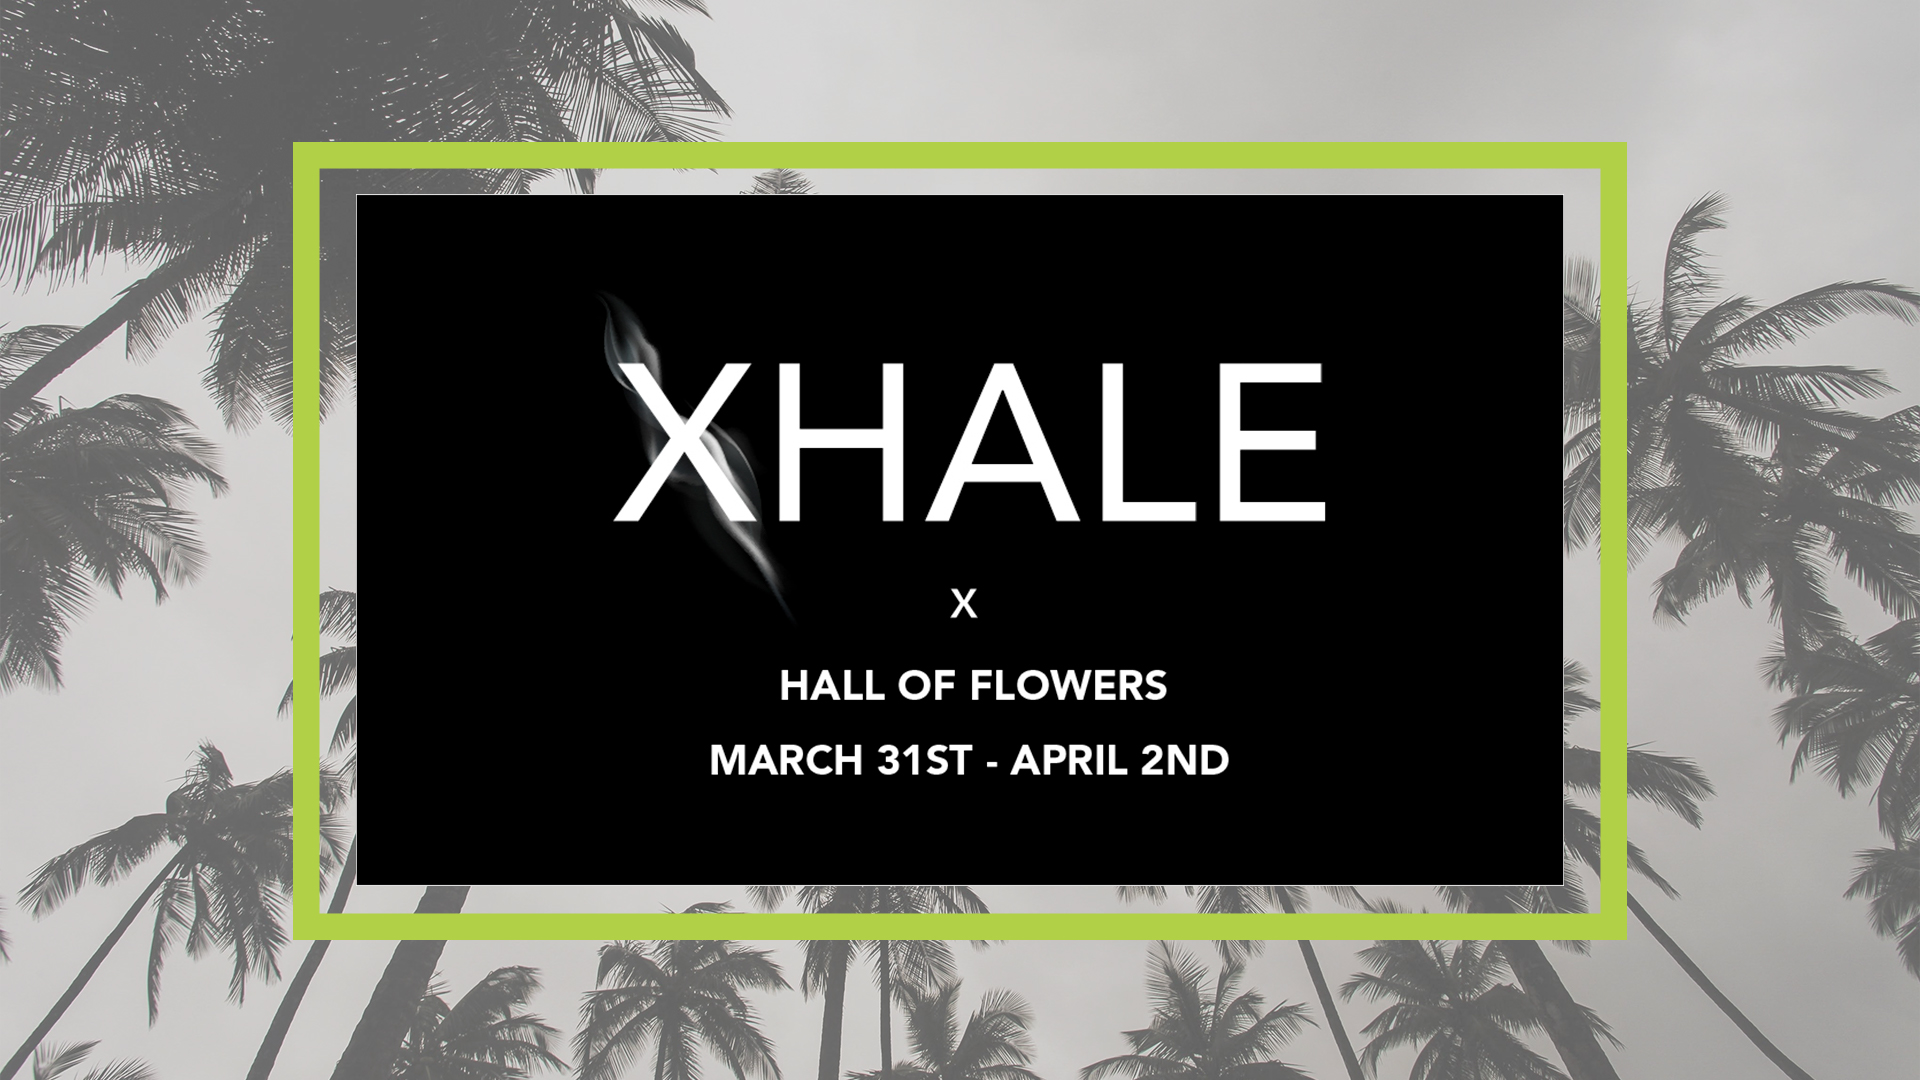 Xhale House at Hall of Flowers